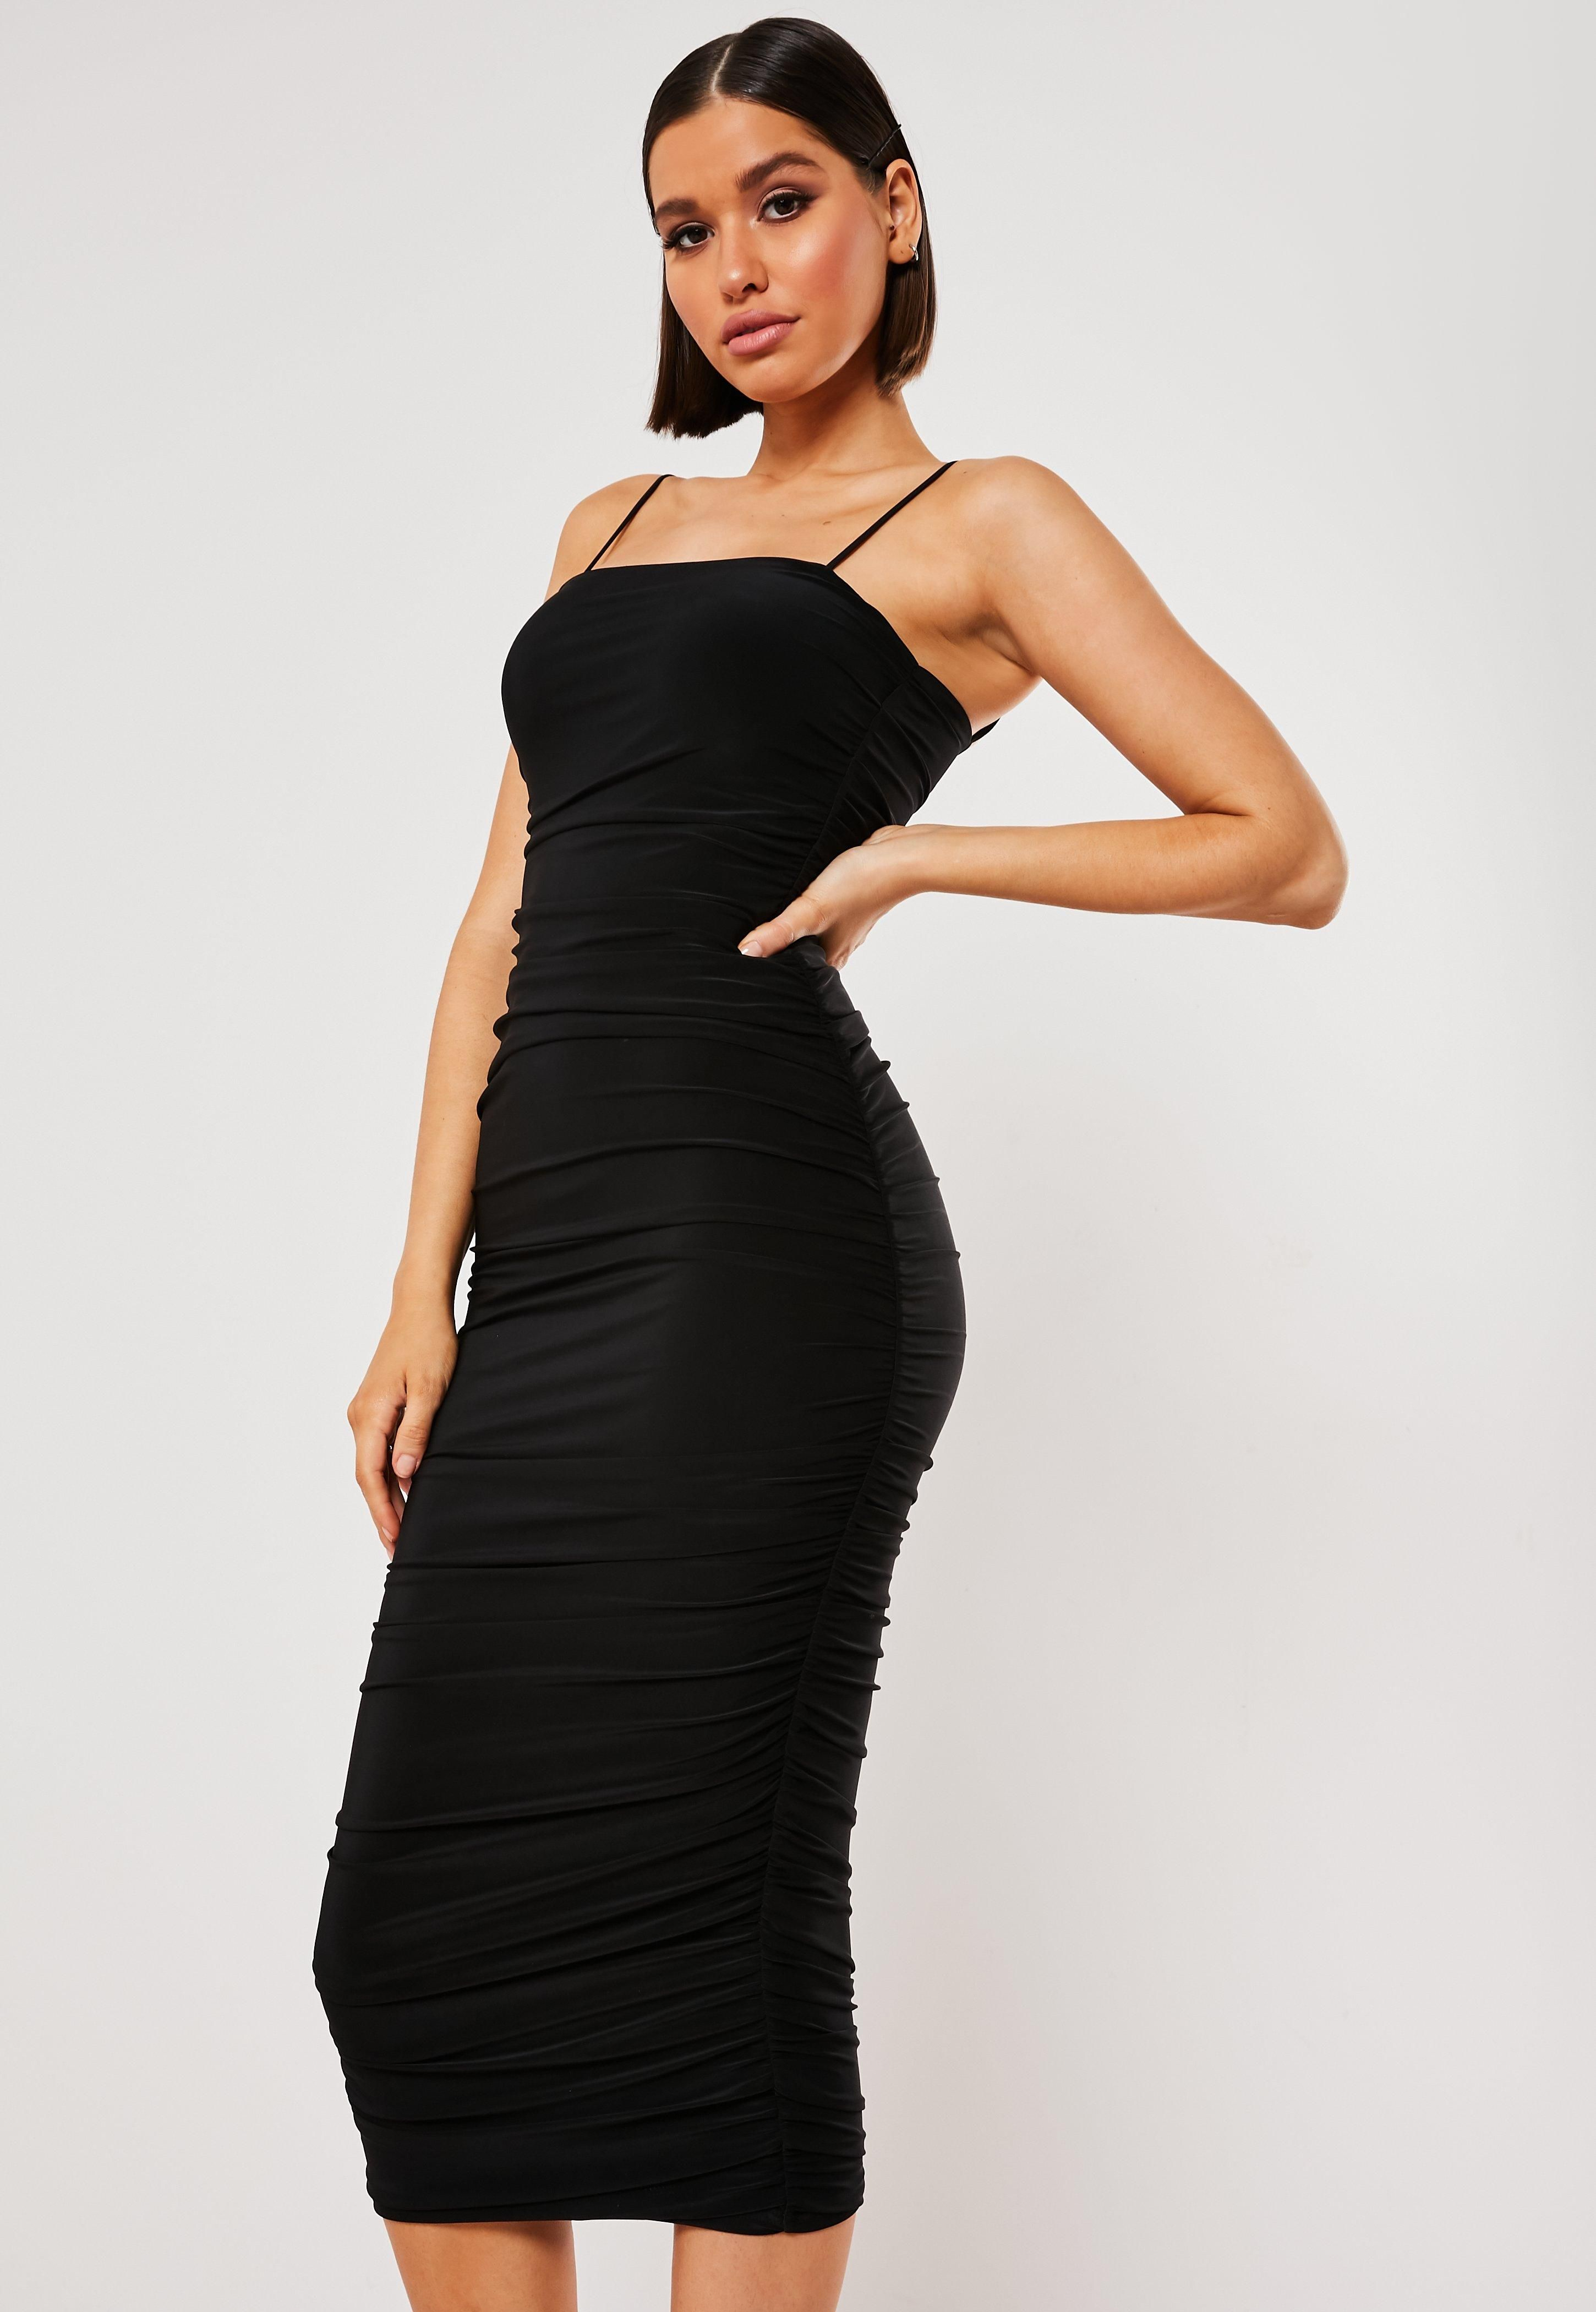 Black Slinky Ruched Cami Bodycon Midi Dress Sponsored Ruched Aff Slinky Black Dresses Womens Dresses Going Out Dresses [ 4200 x 2900 Pixel ]